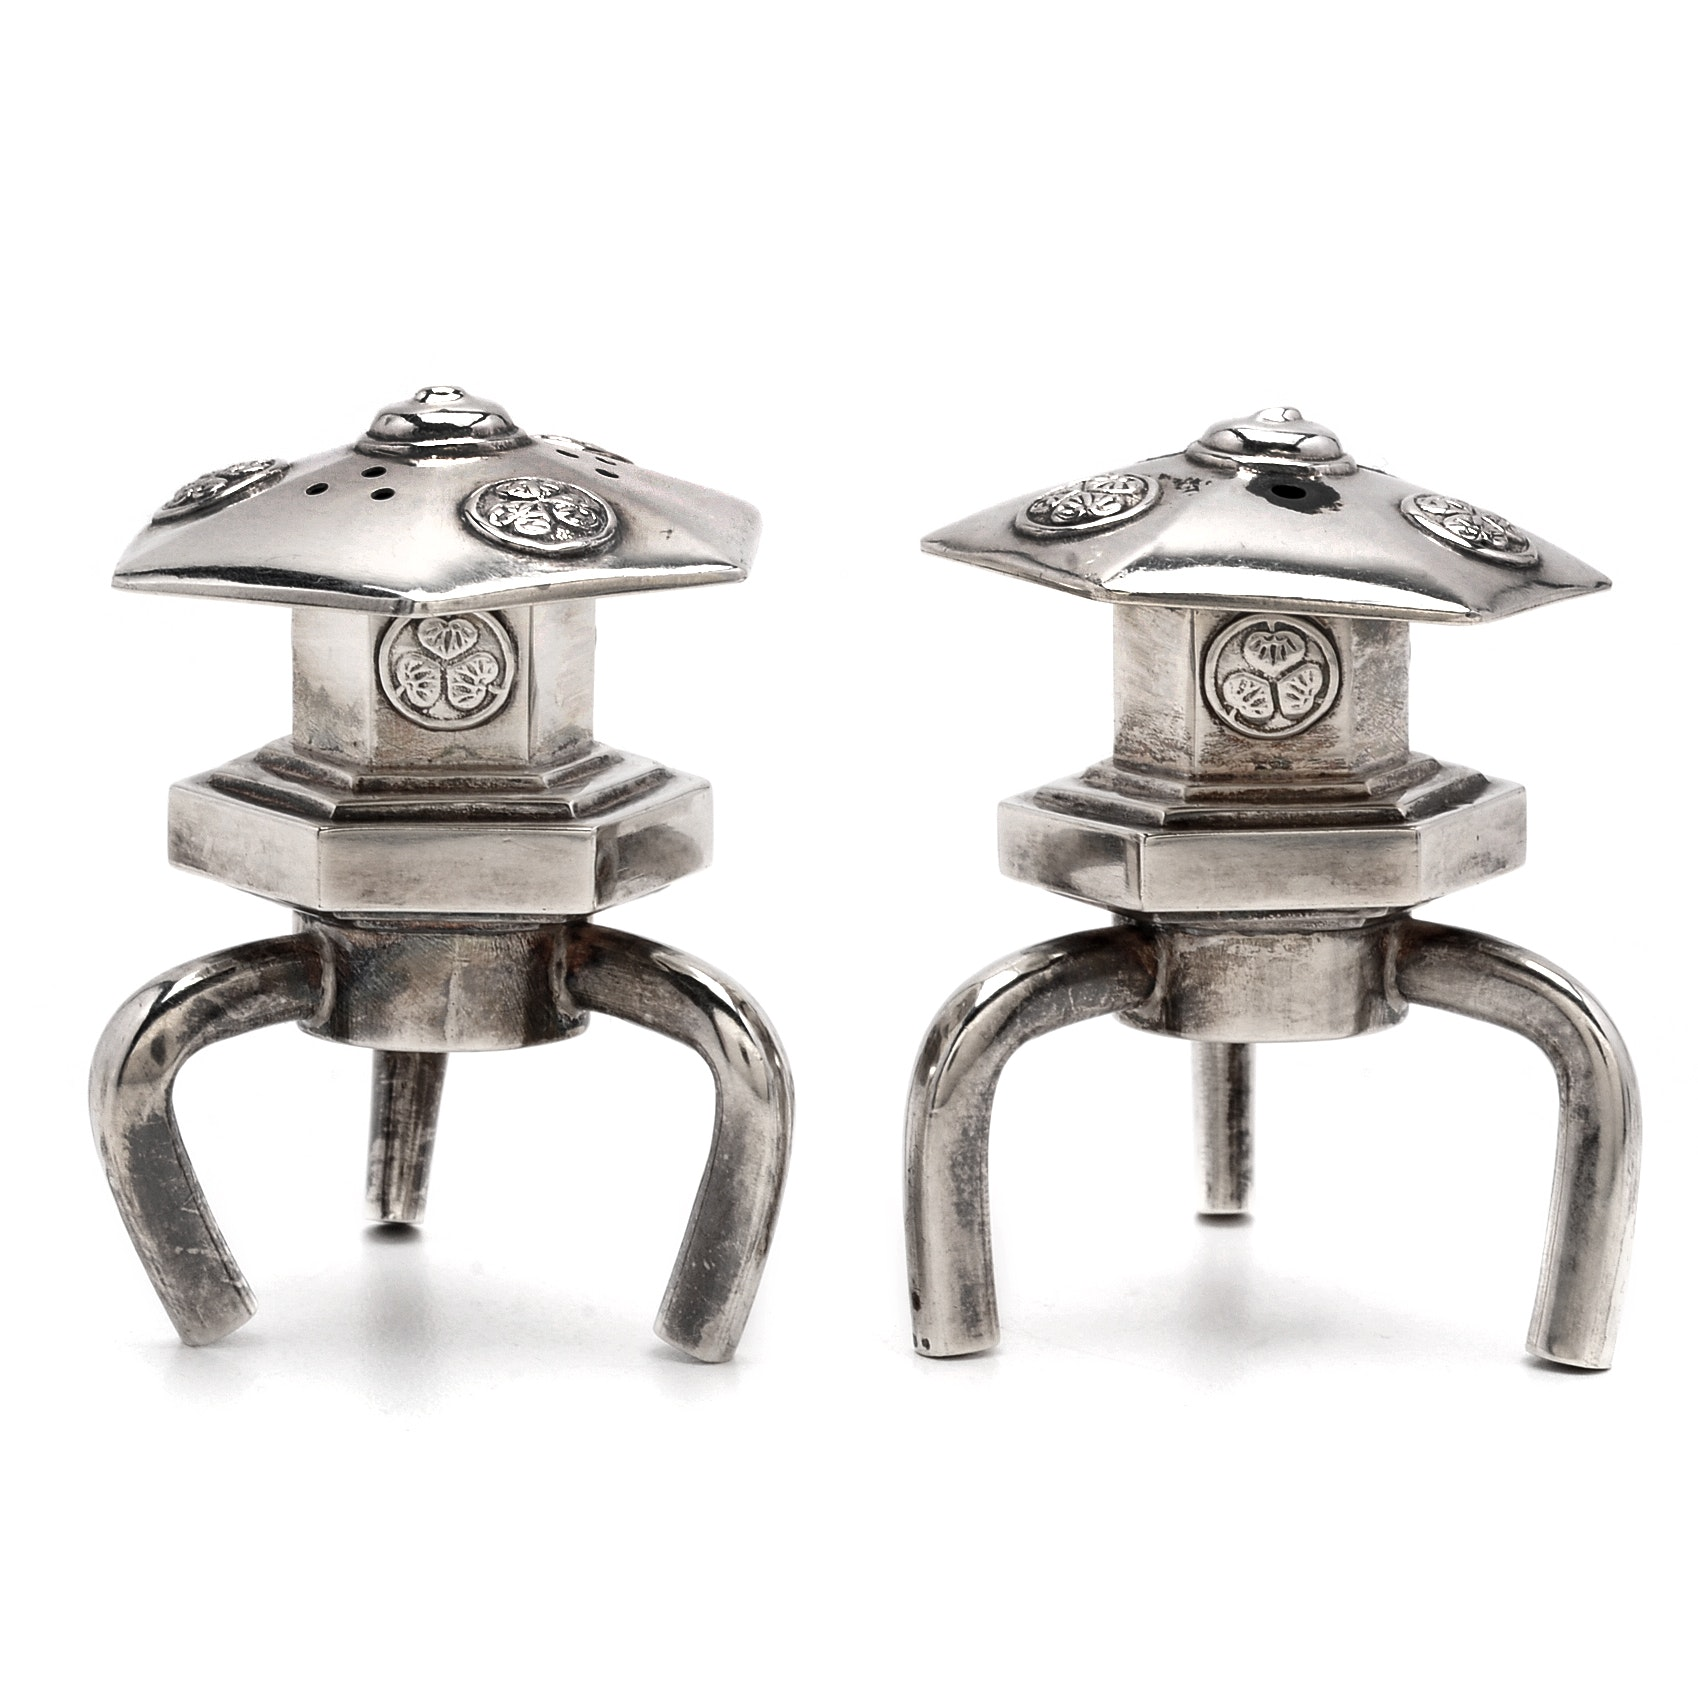 Circa 1940s Japanese Sterling Silver Pagoda Salt and Pepper Shakers